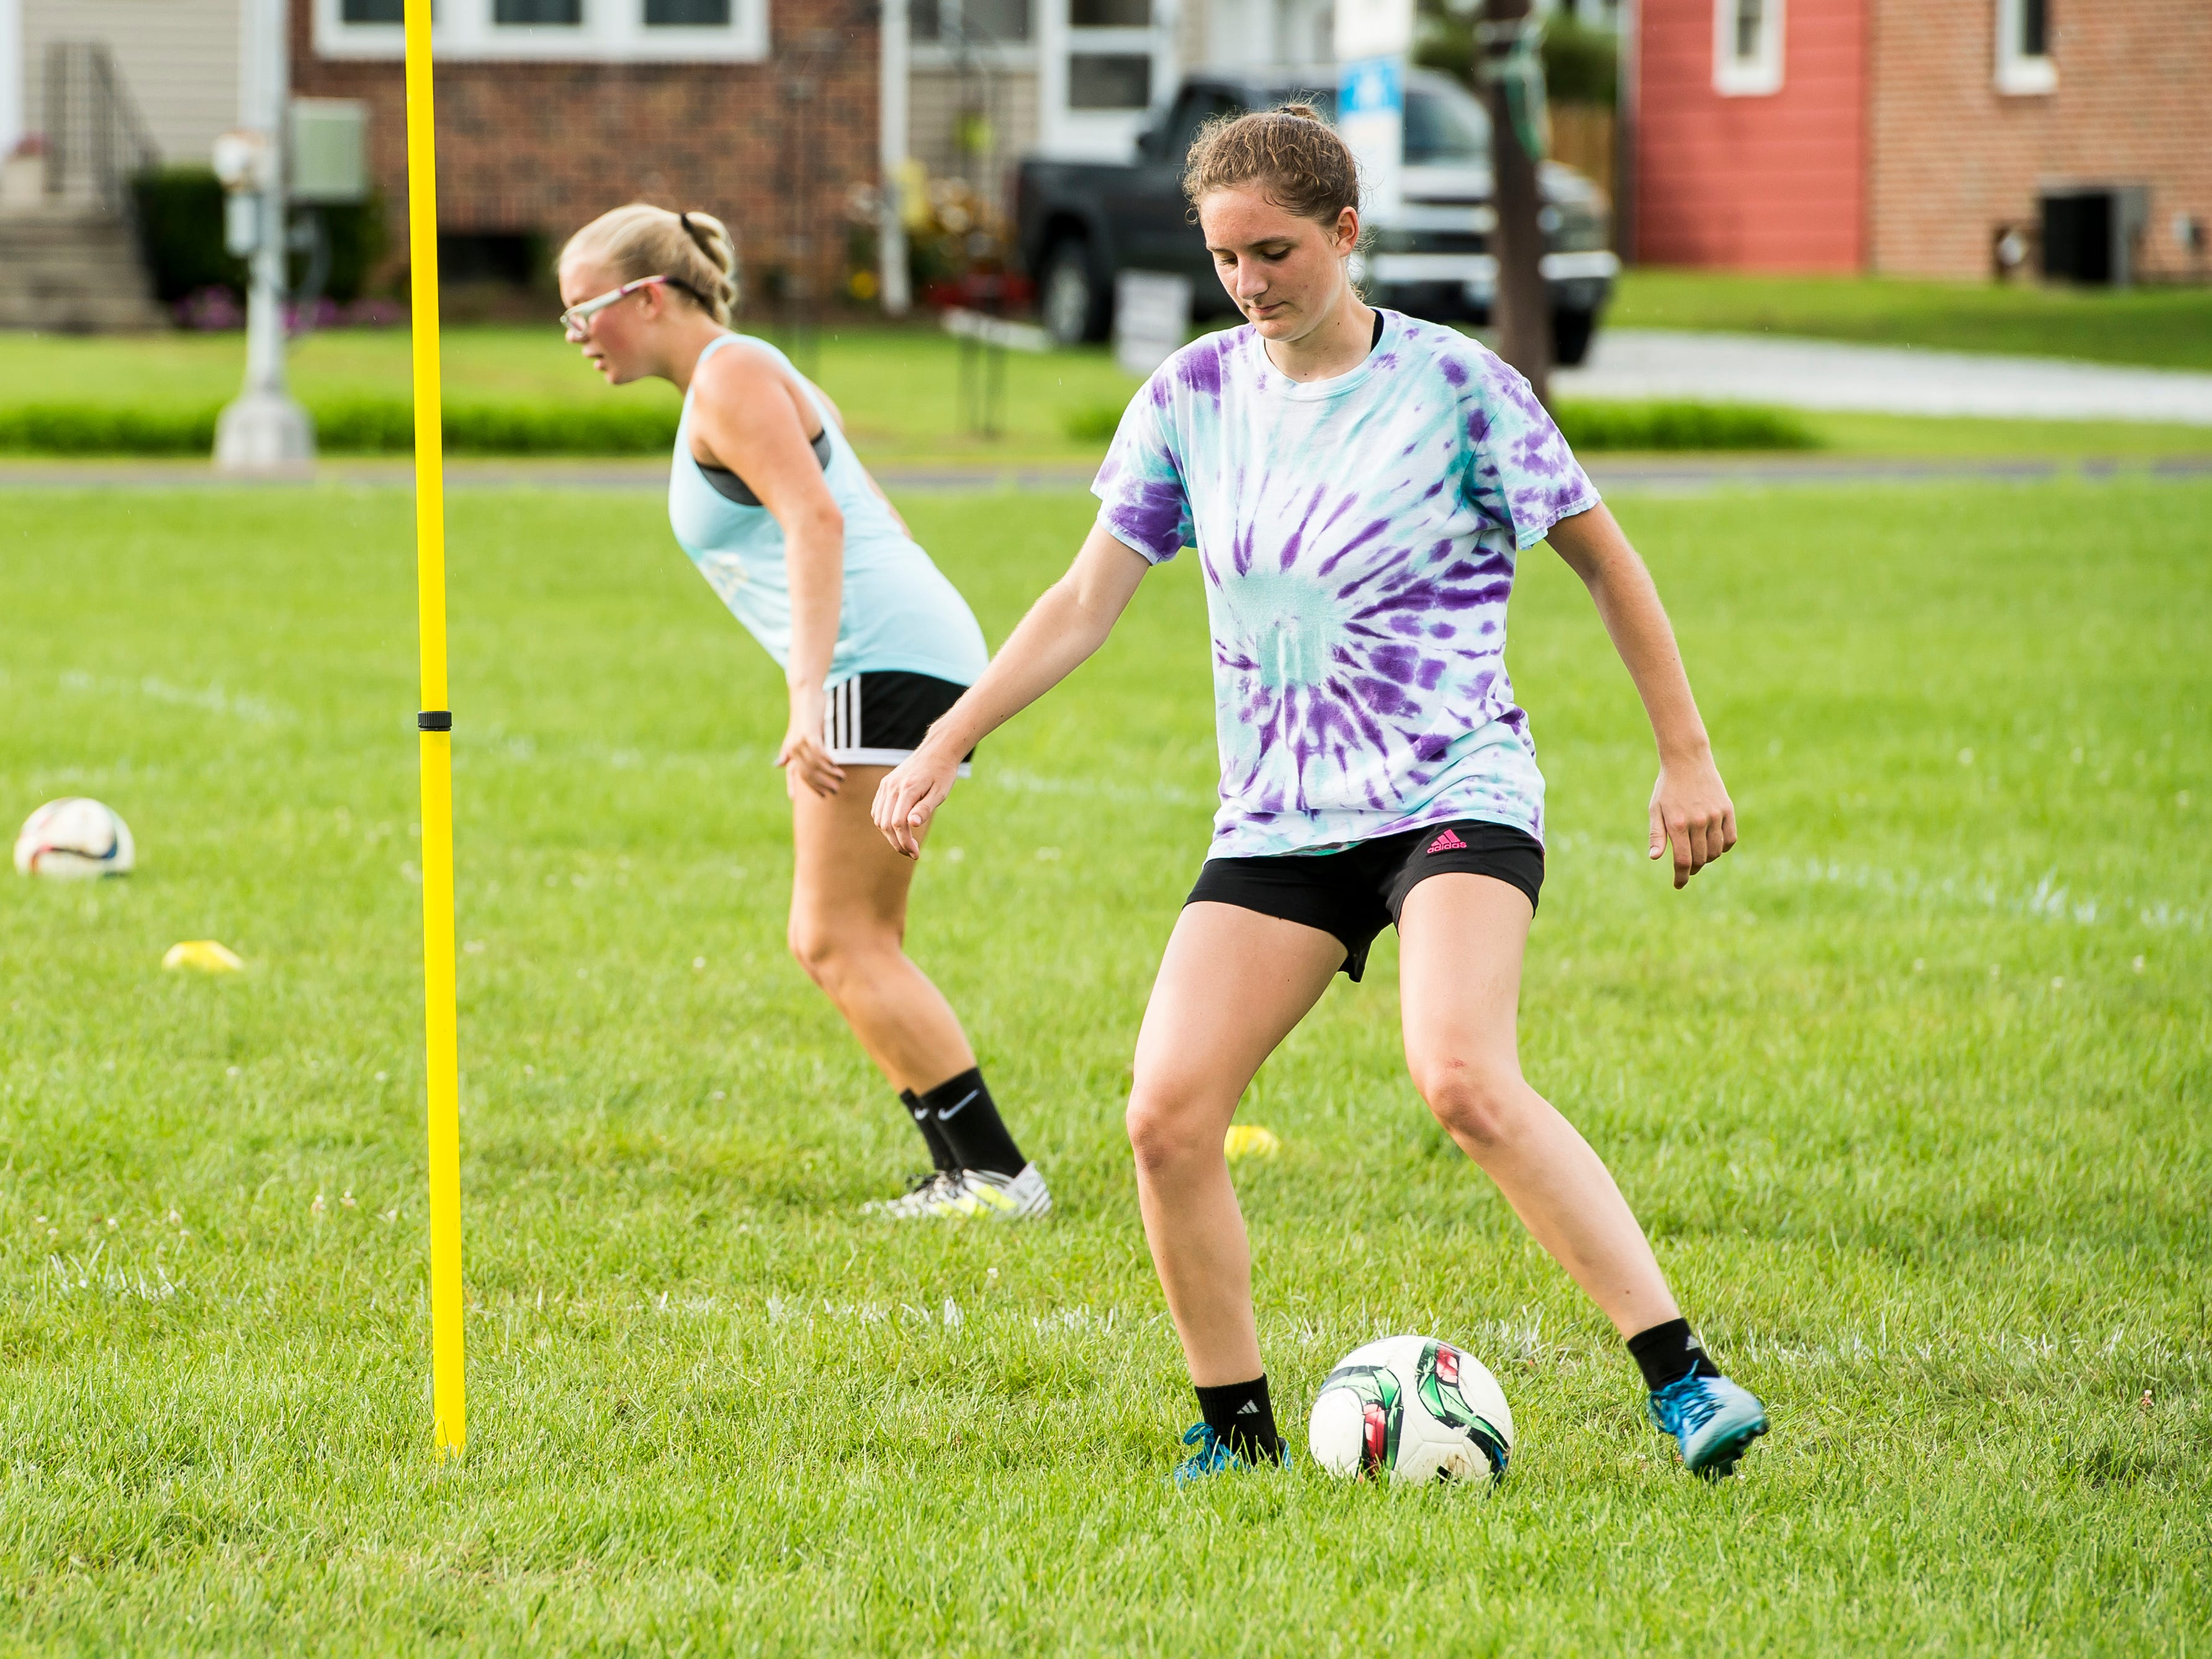 Fairfield soccer players practice on Monday, August 13, 2018.